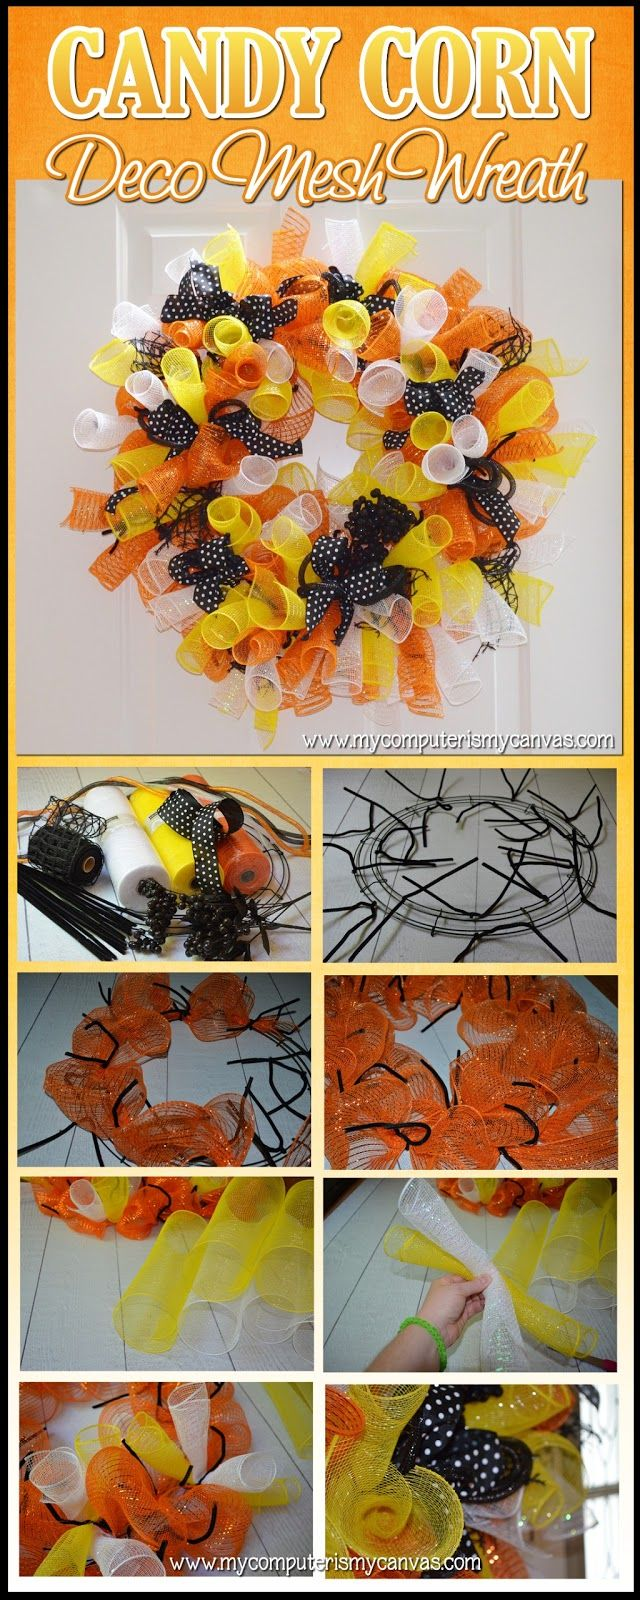 How to Make a Candy Corn Deco Mesh Wreath for Halloween (except you have to watch a youtube video for instructions - the link is on her website).